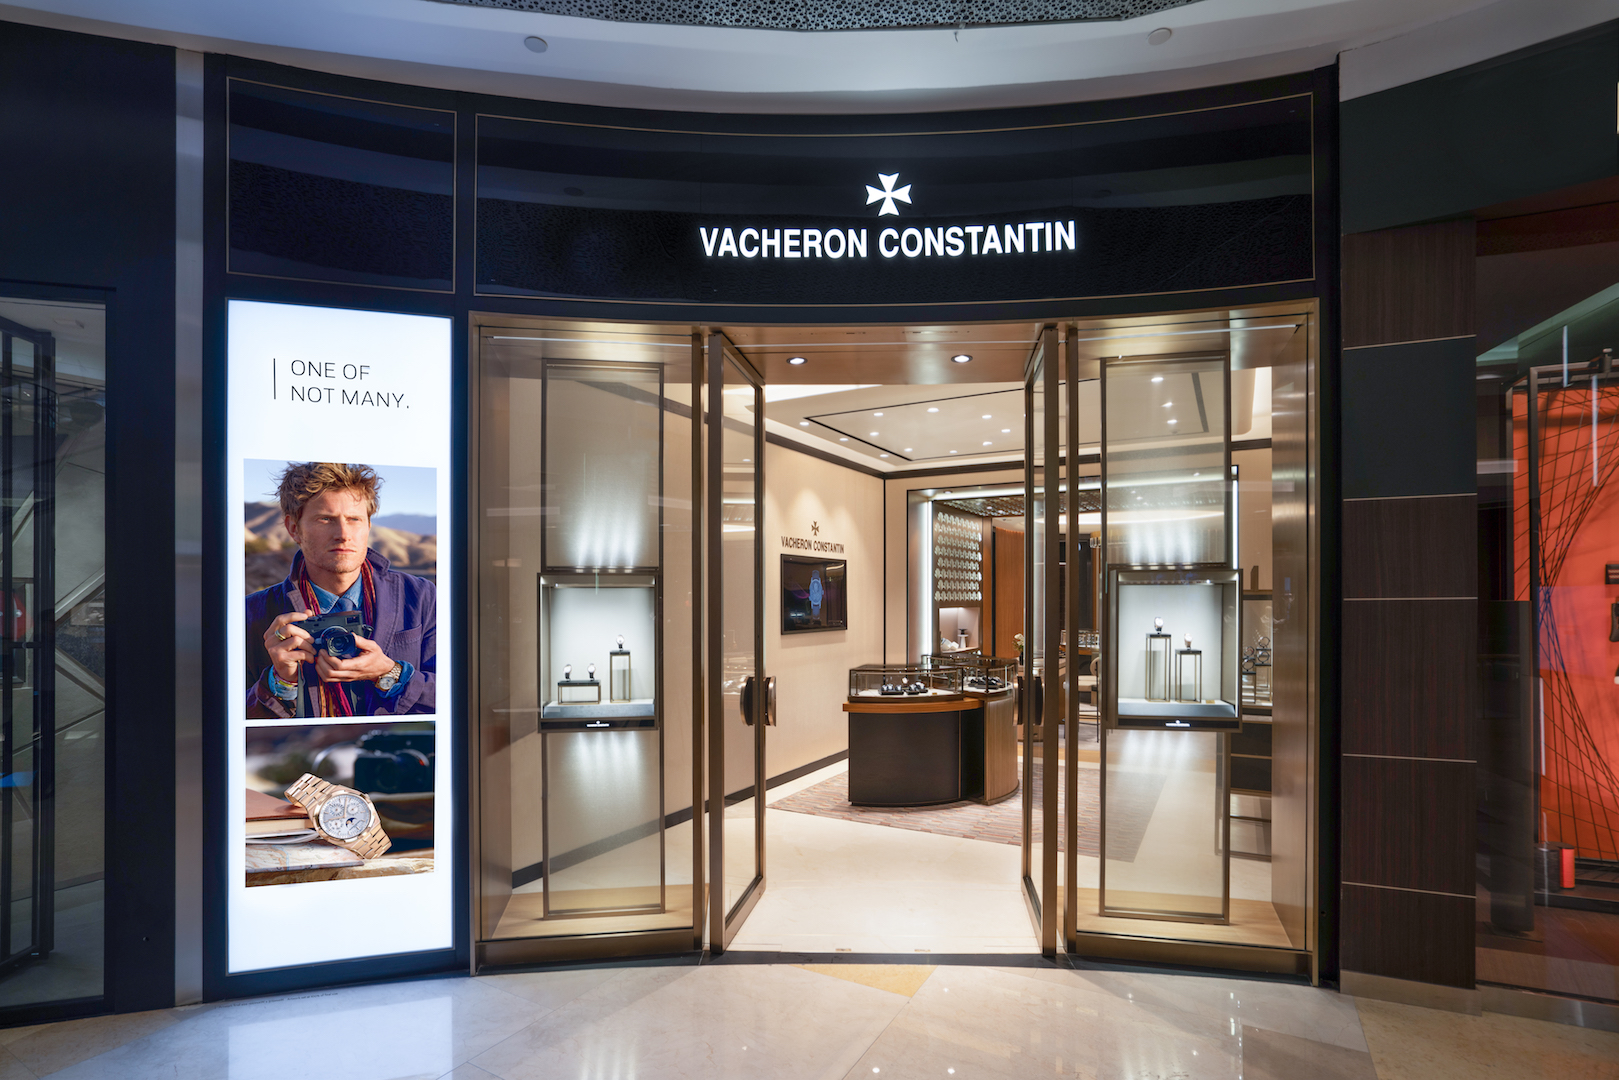 Vacheron Constantin new retail concept at ION Orchard Singapore store